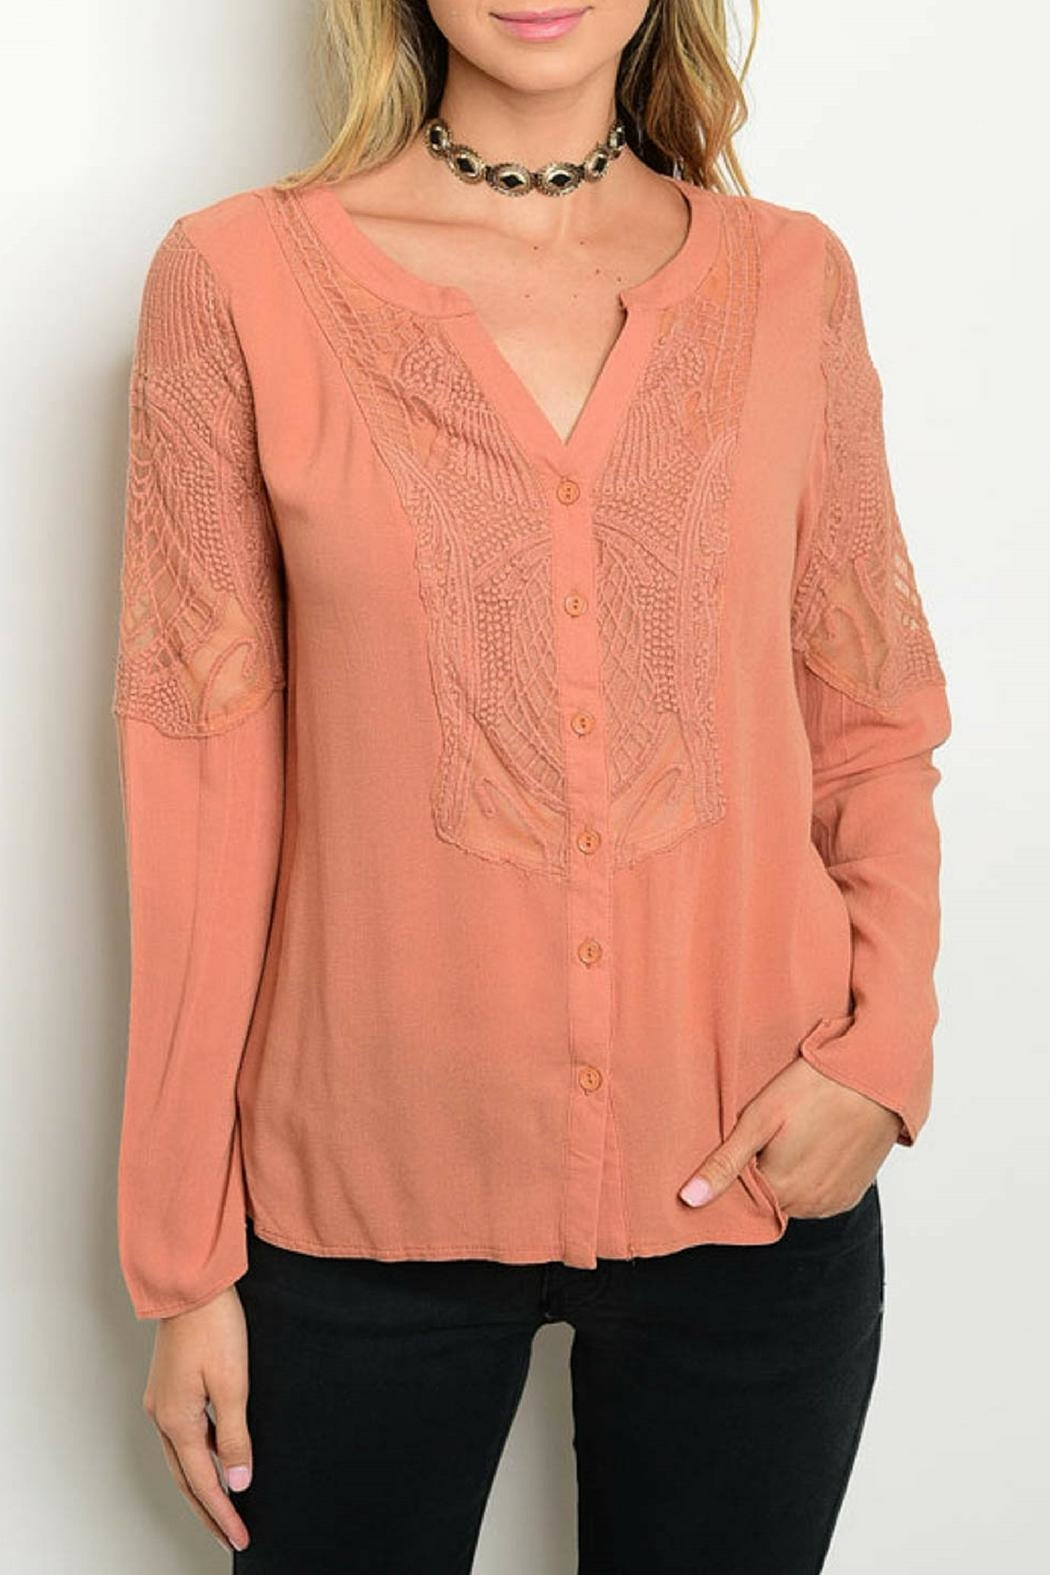 Andree Peach Lace Top - Main Image